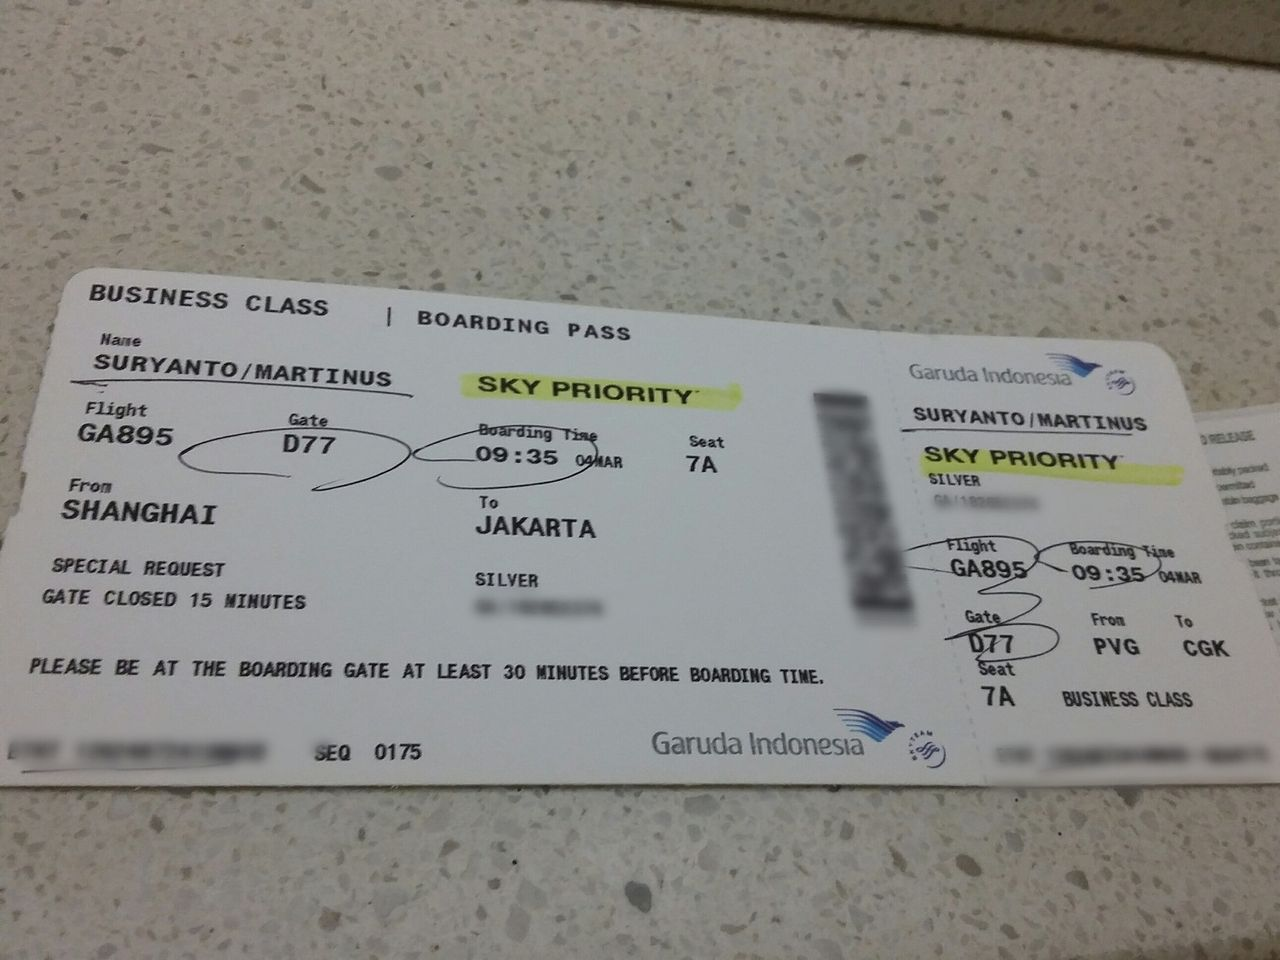 Review Of Garuda Indonesia Flight From Shanghai To Jakarta In Business